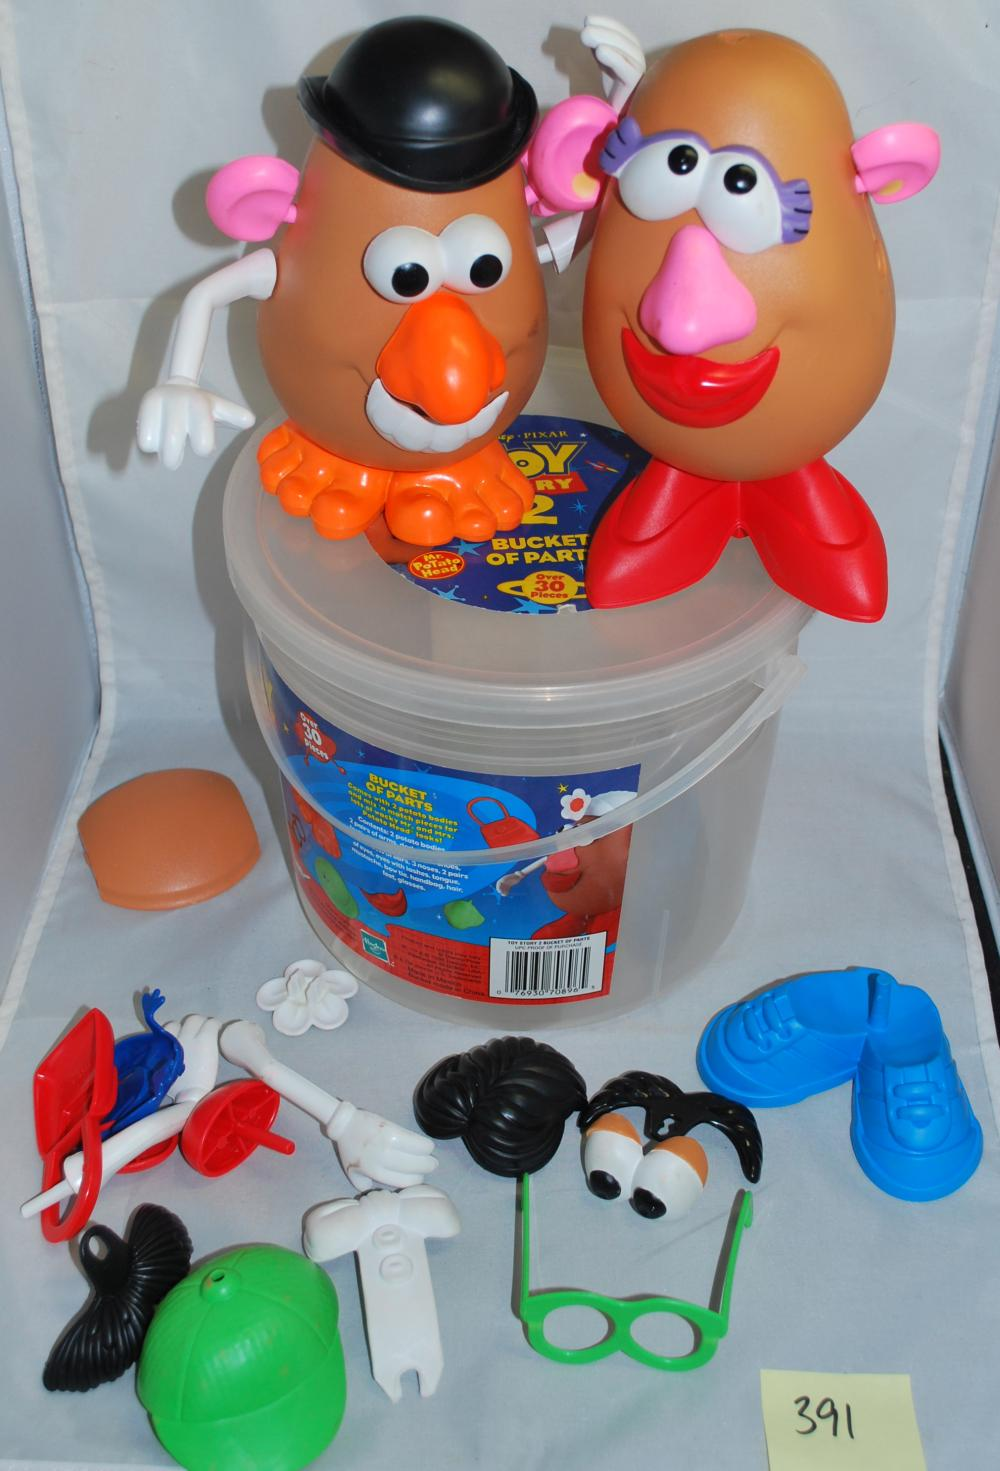 Bucket of toy Story Mr. Potato Head Figures